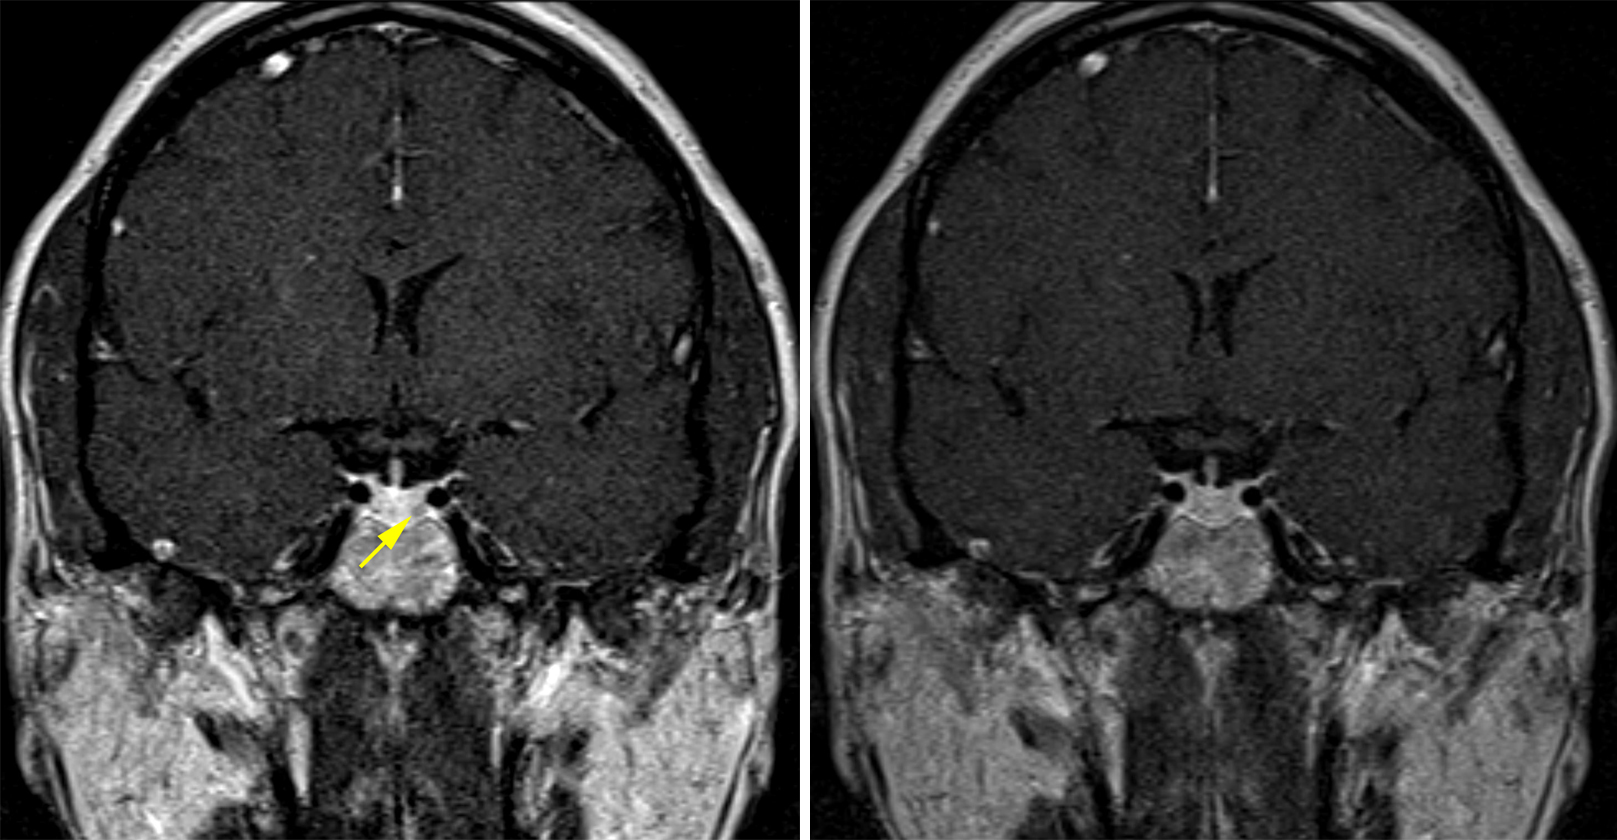 Figure 1: (Left) A tiny pituitary adenoma is visible on early postcontrast imaging as a nodule showing less enhancement than the surrounding pituitary tissue in the left inferolateral aspect of the pituitary gland (yellow arrow). (Right) This adenoma becomes invisible on the more delayed postcontrast imaging as the lesion and the pituitary gland become more similar in their degree of contrast enhancement.